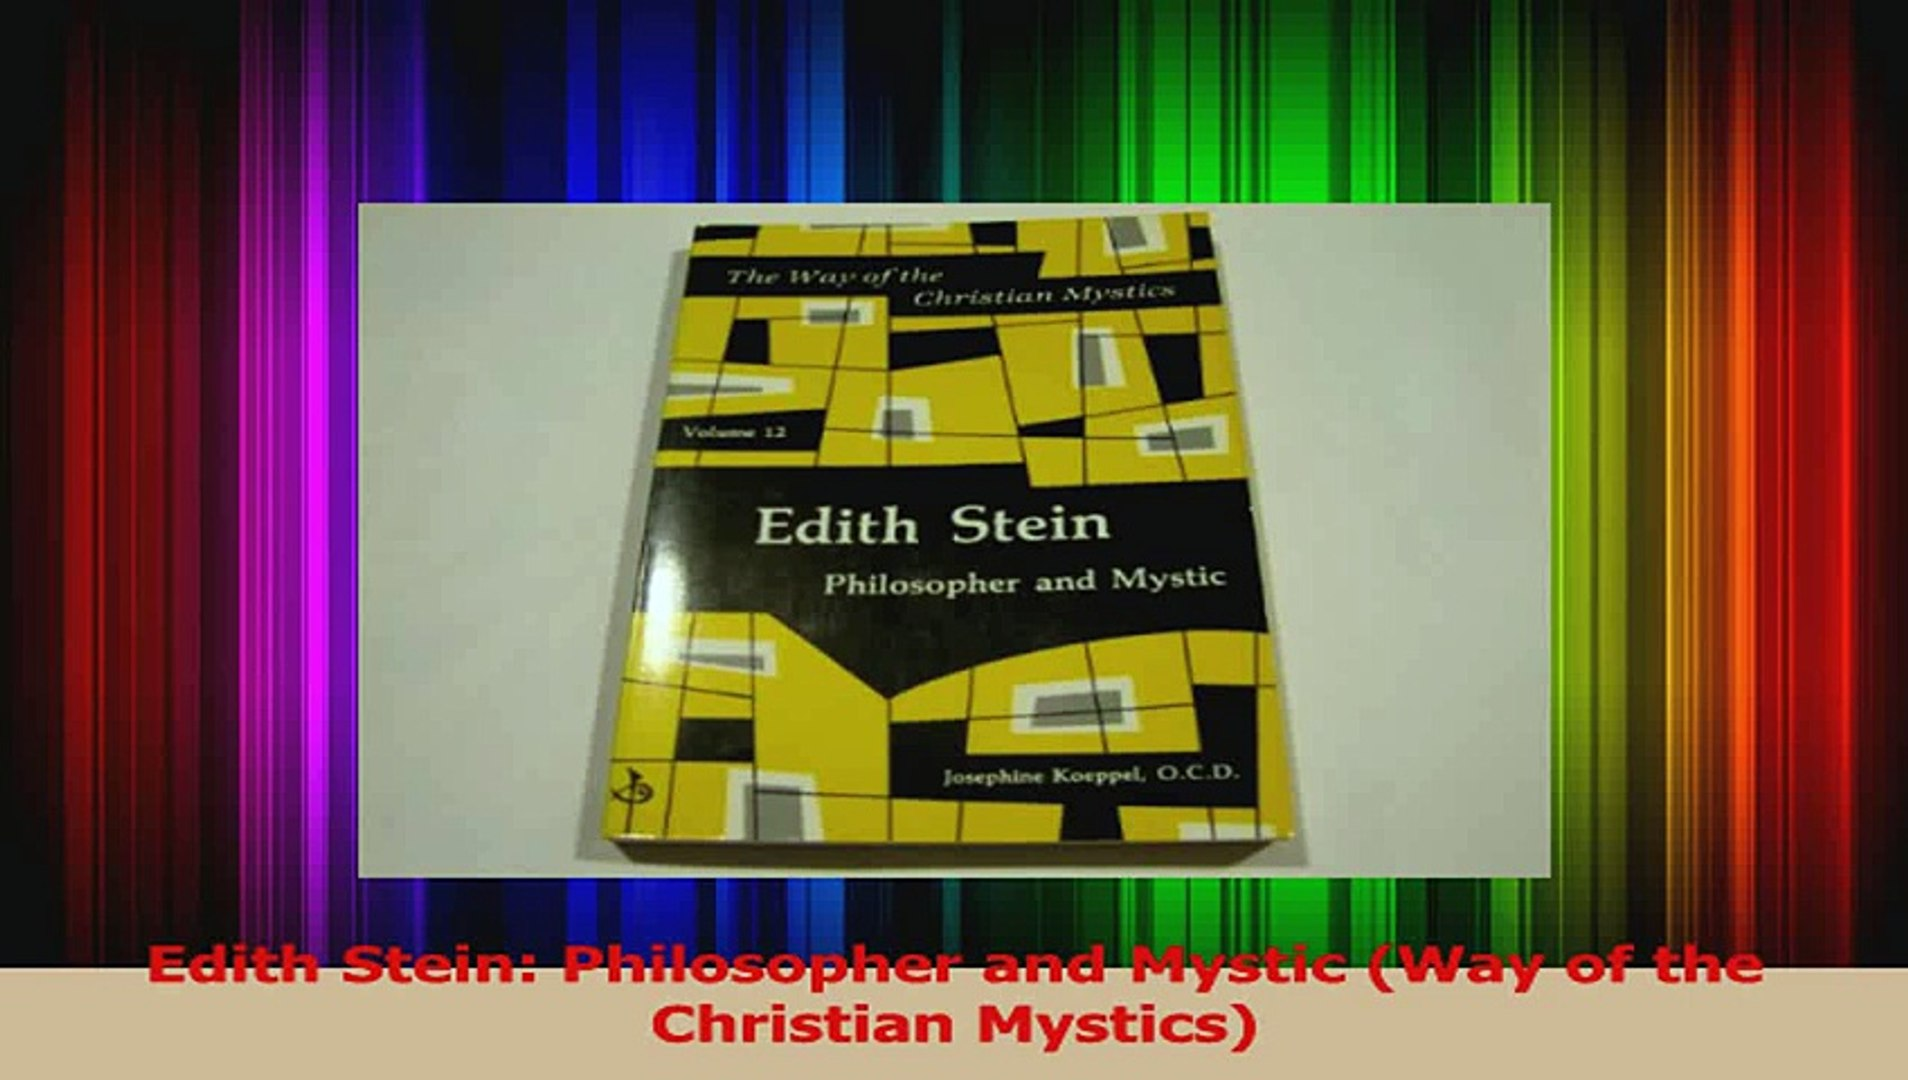 Edith Stein Philosopher and Mystic Way of the Christian Mystics Read Online